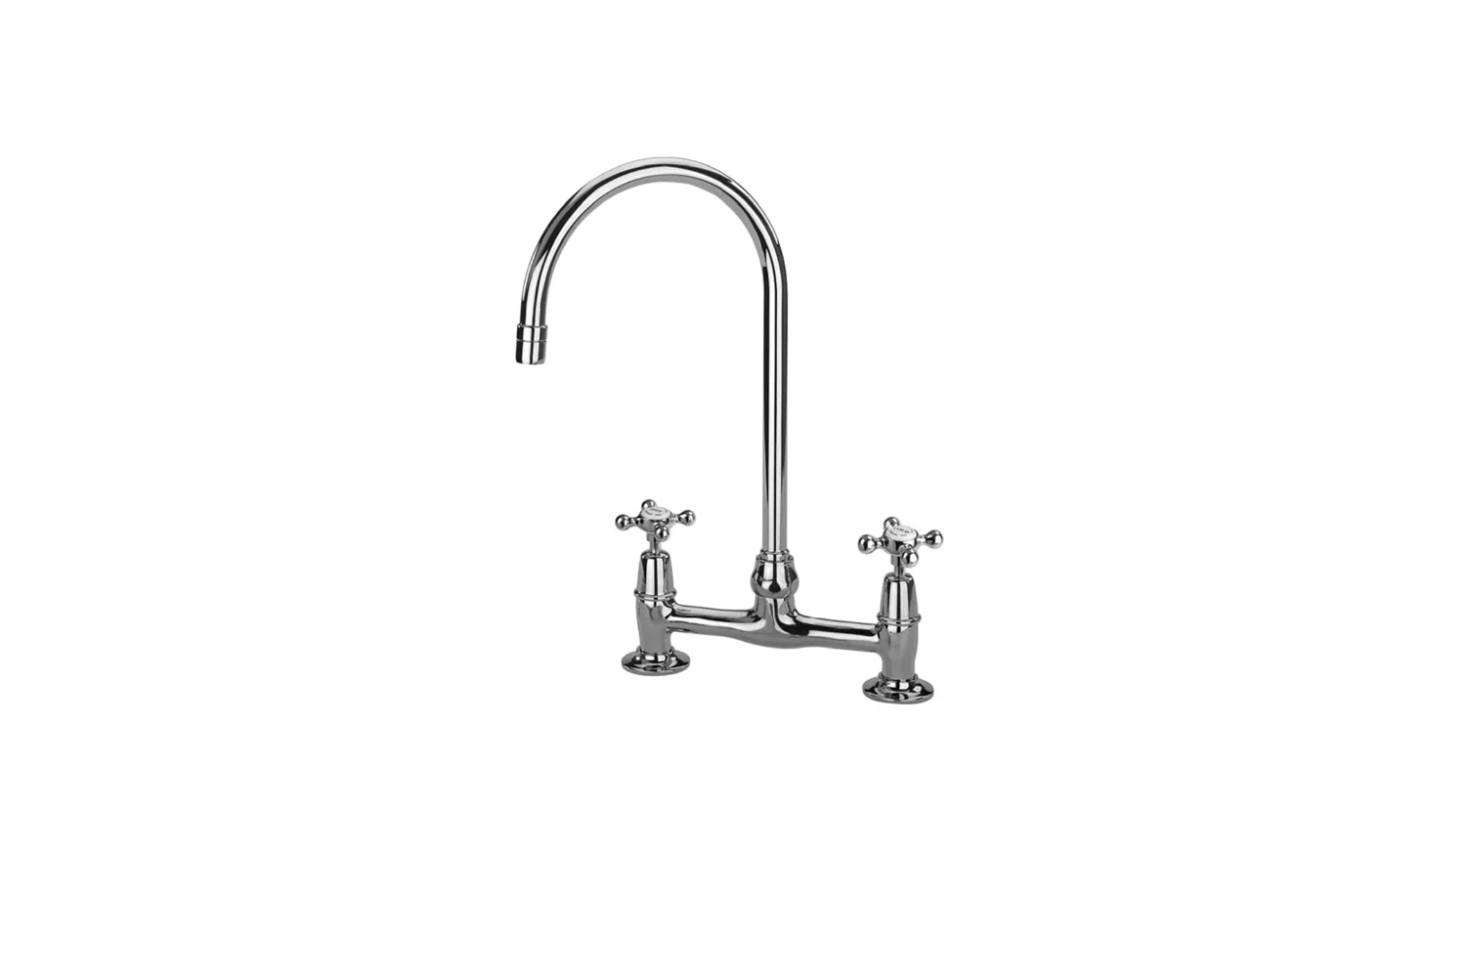 The kitchen faucet is a Barber Wilsons Bridgemaster Kitchen Faucet with Side Spray in unlacquered brass; $